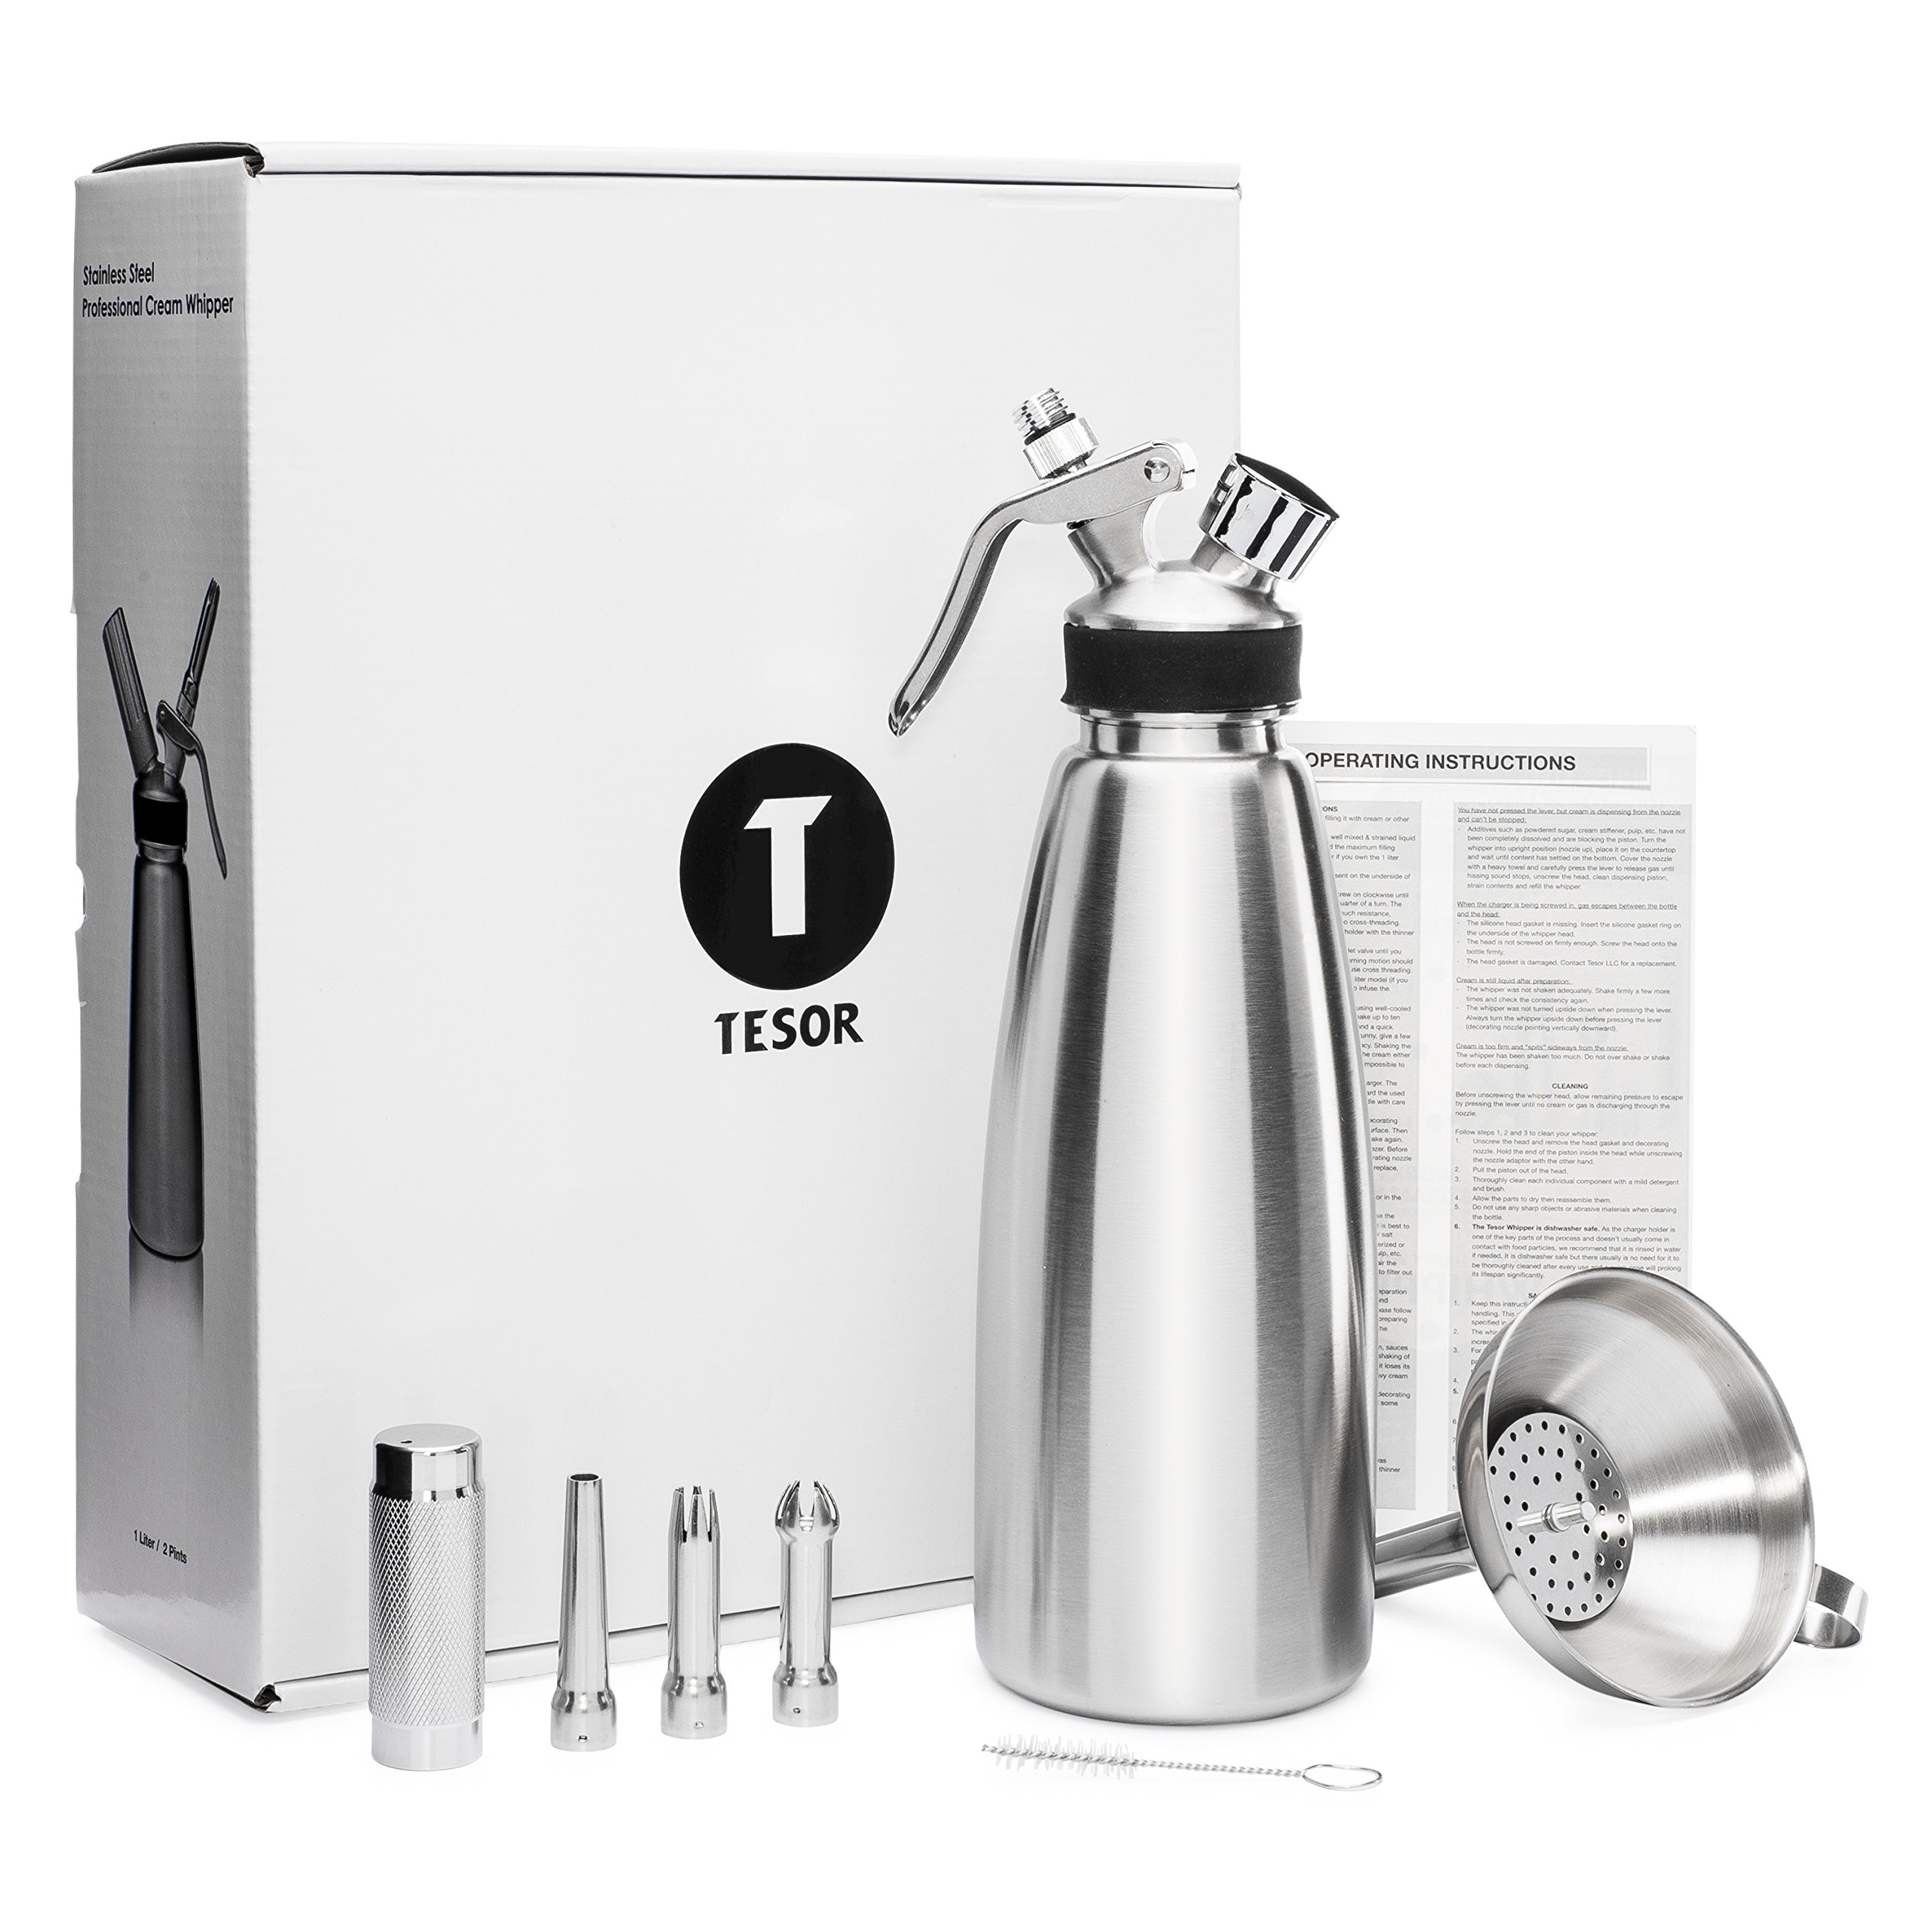 Tesor Stainless Steel Whipped Cream Dispenser Value Bundle With Three Tip Attachment Nozzles, Funnel and Strainer (1 Quart)